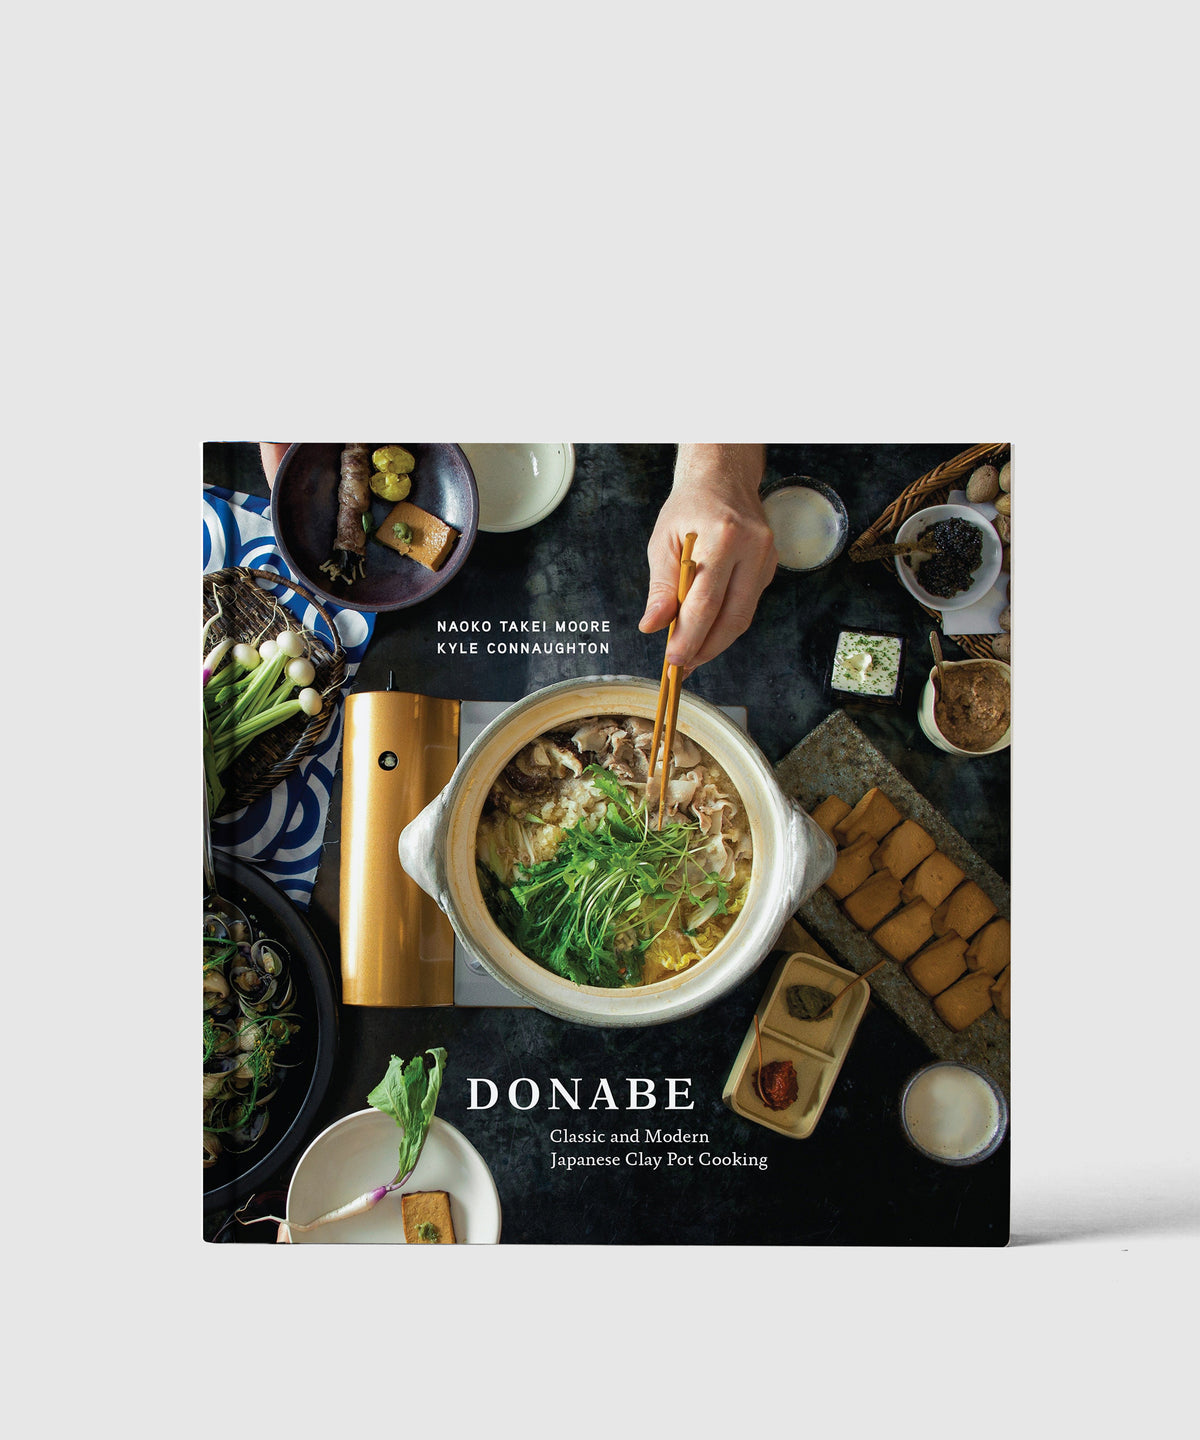 'Donabe: Classic and Modern Japanese Clay Pot Cooking'